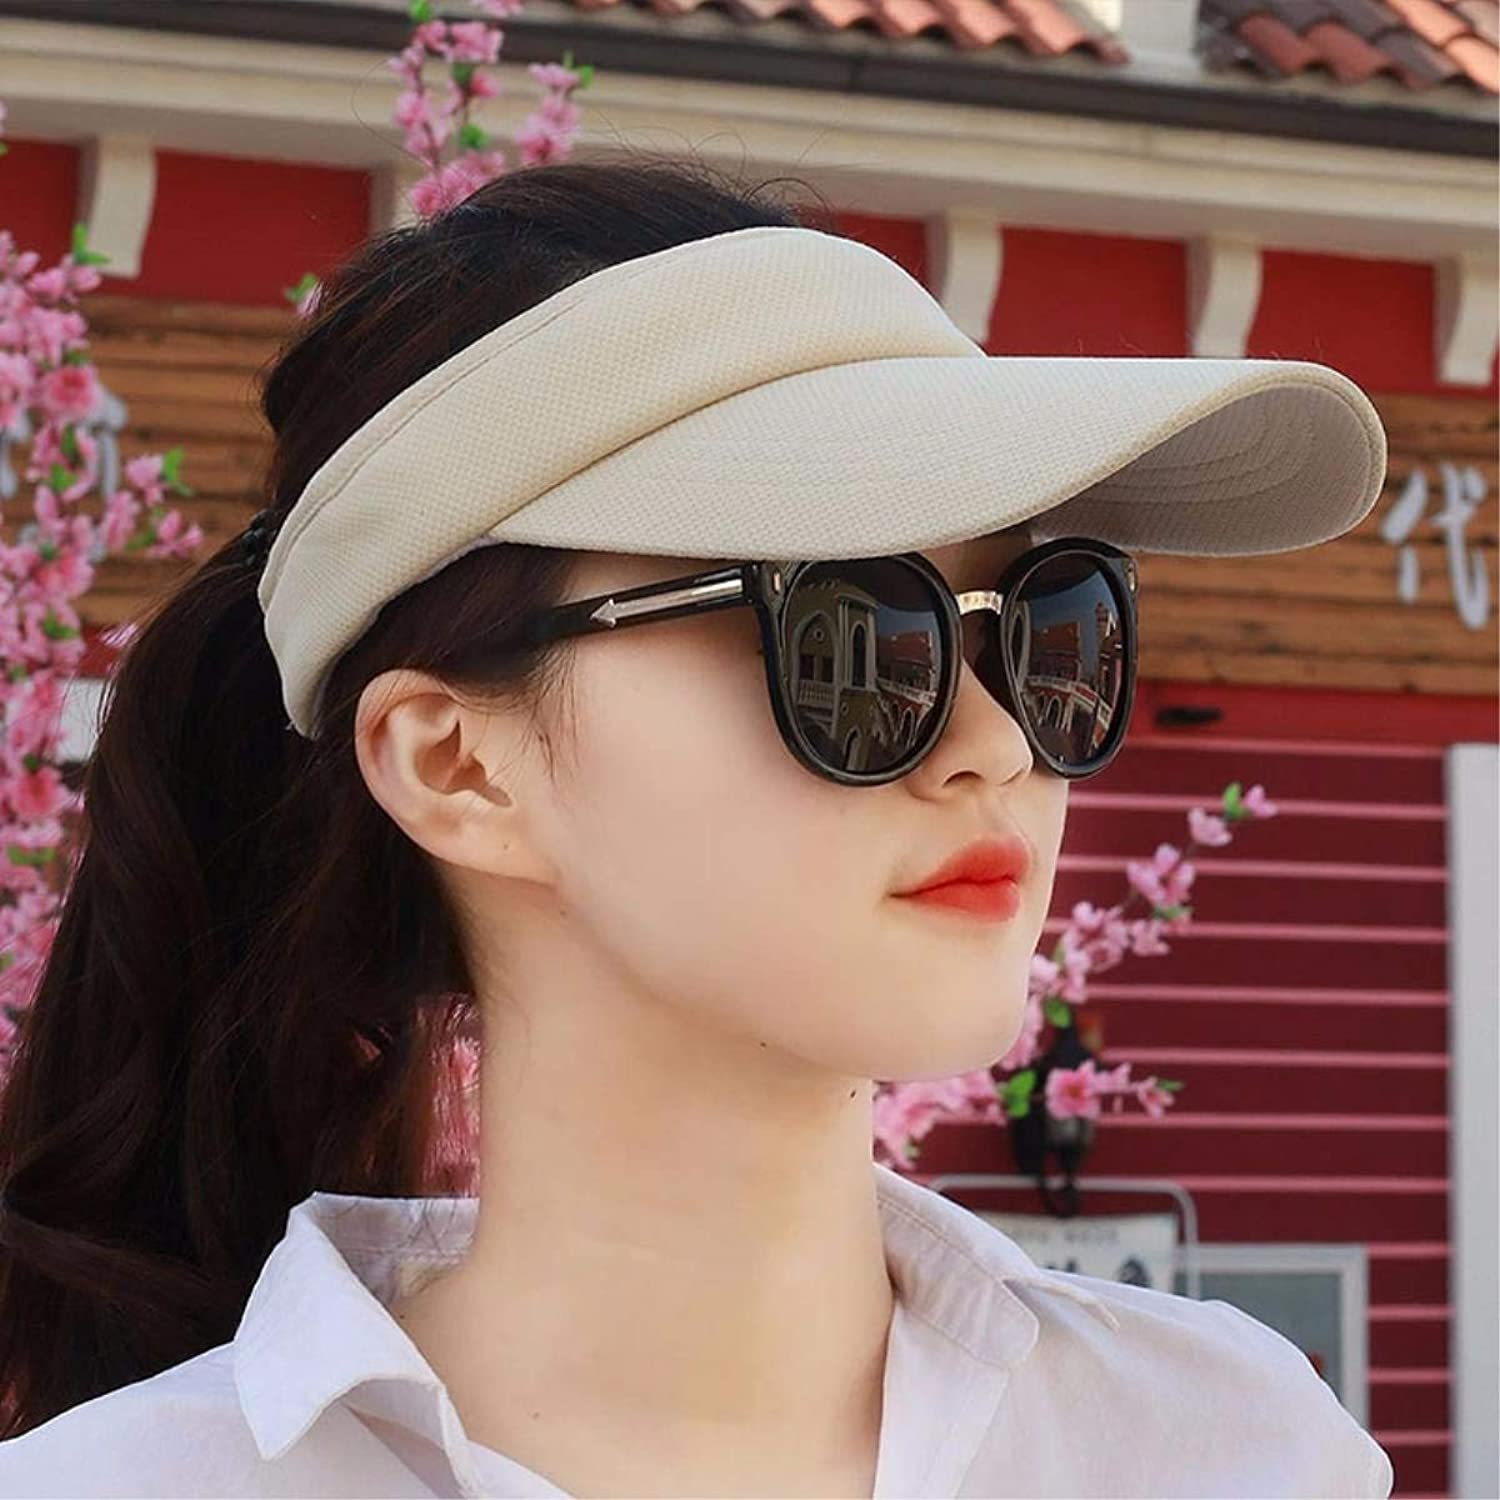 Chuiqingnet Hat female summer empty top hat sun hat cap Great for outdoor sports visor cap beach cap a cap